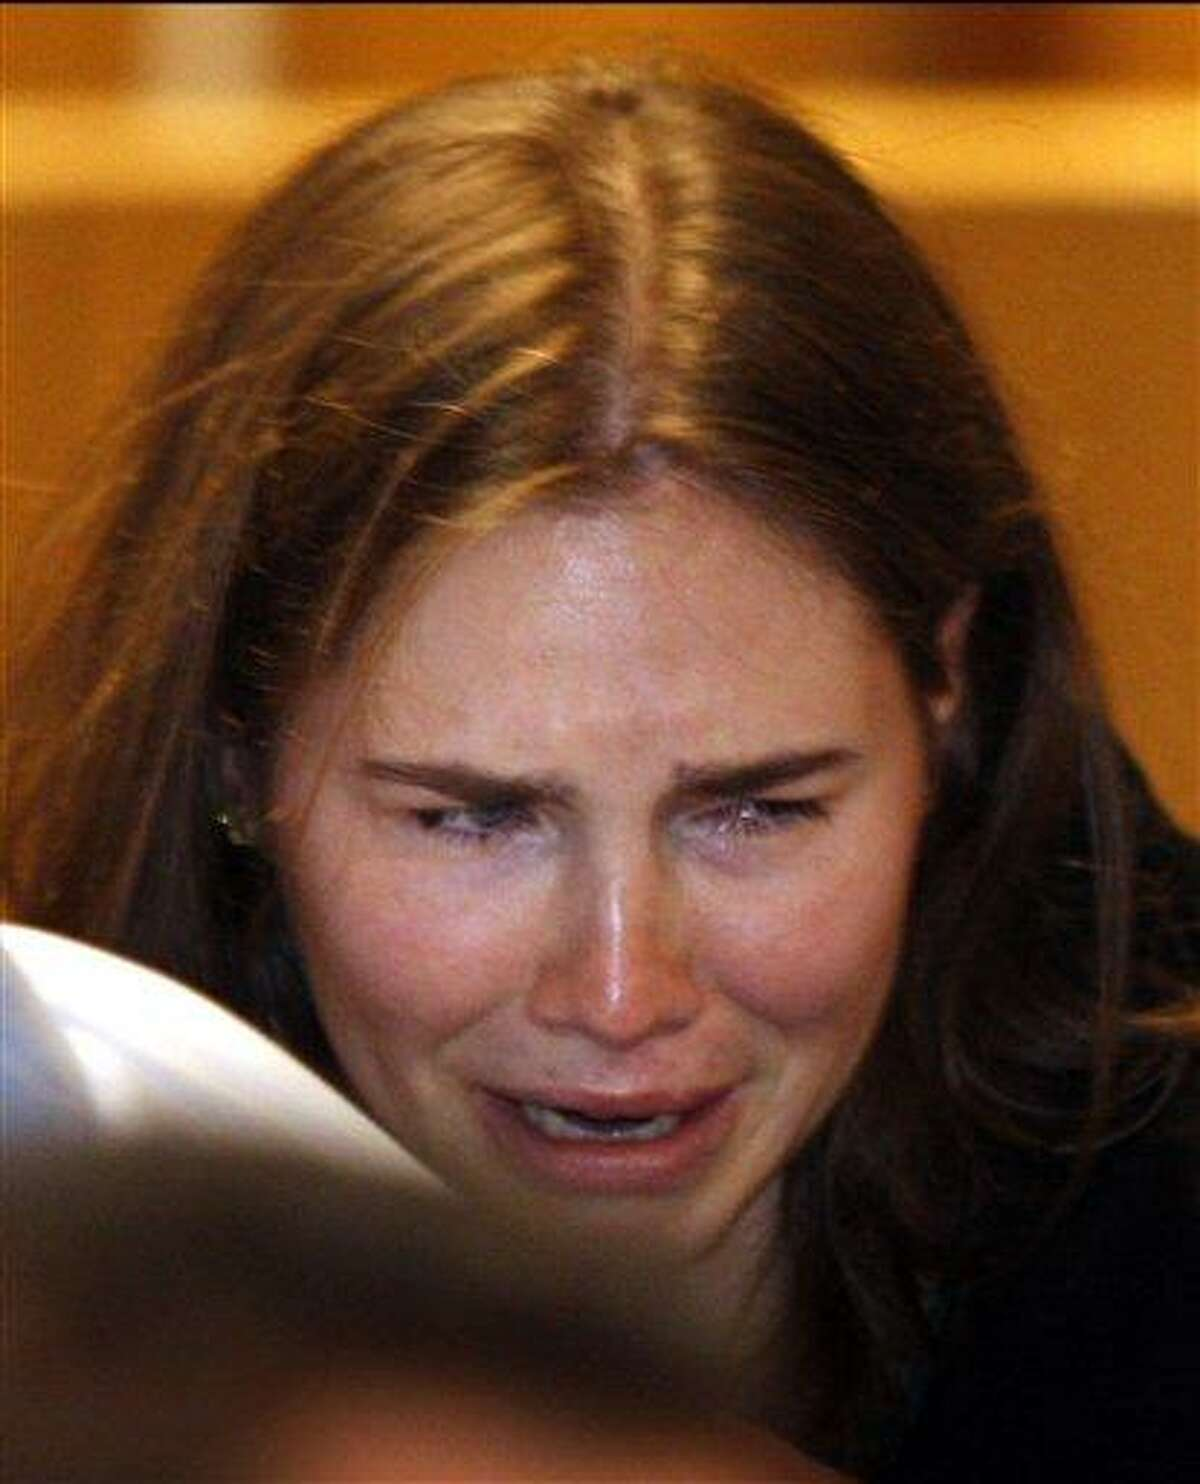 FILE - This is a Monday, Oct. 3, 2011 file photo of Amanda Knox as she breaks into tears after hearing the verdict that overturns her conviction and acquits her of murdering her British roommate Meredith Kercher, at the Perugia court, central Italy. Italy's highest criminal court Tuesday March 26, 2013 has ordered a new trial in the case of Amanda Knox in the slaying of her British roommate. The court ruled that an appeals court in Florence must re-hear the case against the American and her Italian-ex-boyfriend. Knox has been living back in the U.S. while her former boyfriend continues studies in Italy. (AP Photo/Pier Paolo Cito, File)